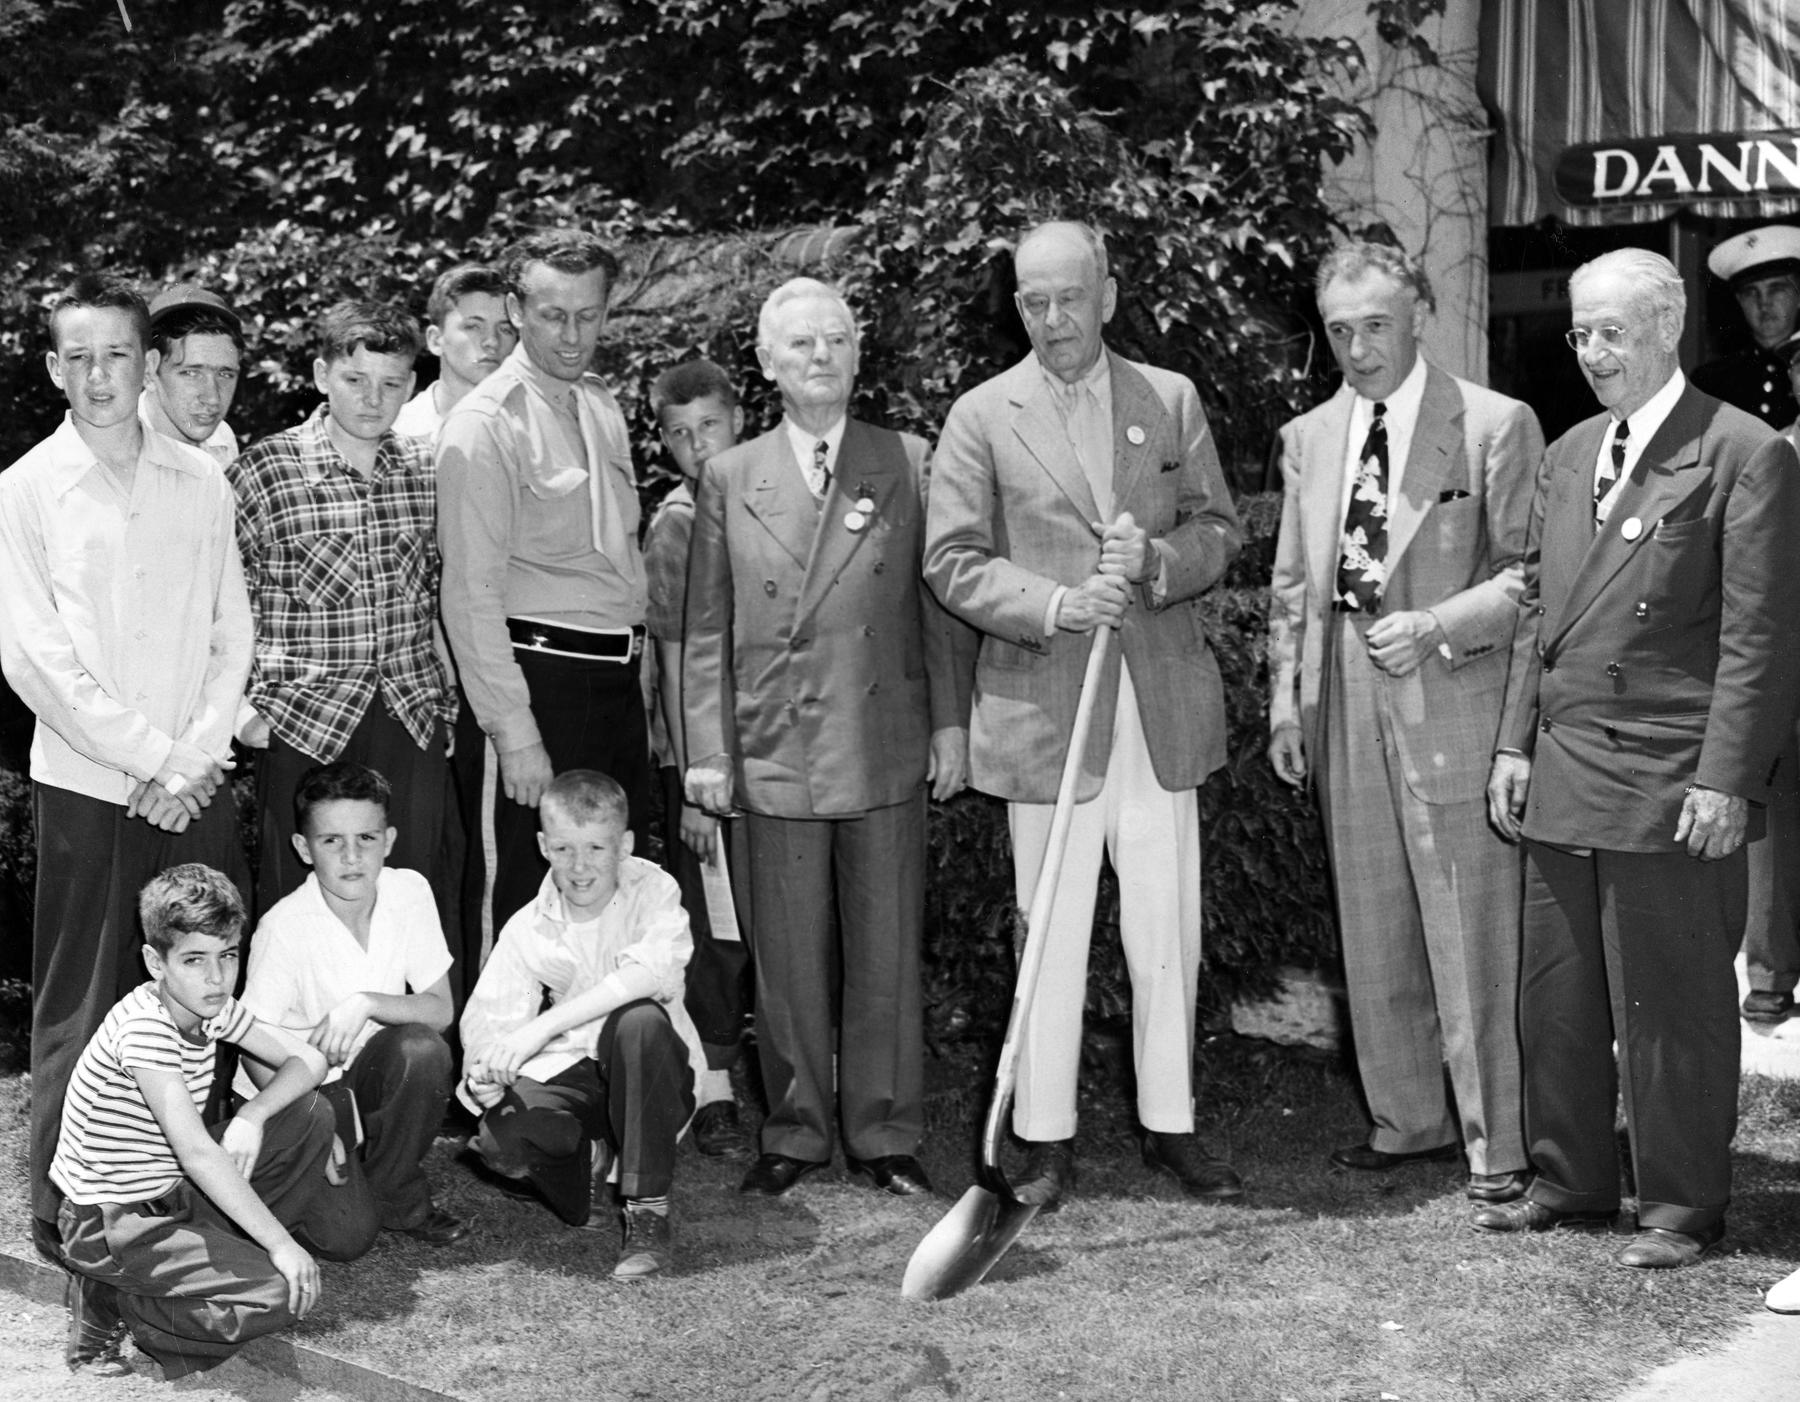 Stephen C. Clark (with shovel) at the groundbreaking for the Museum expansion (National Baseball Hall of Fame and Museum)